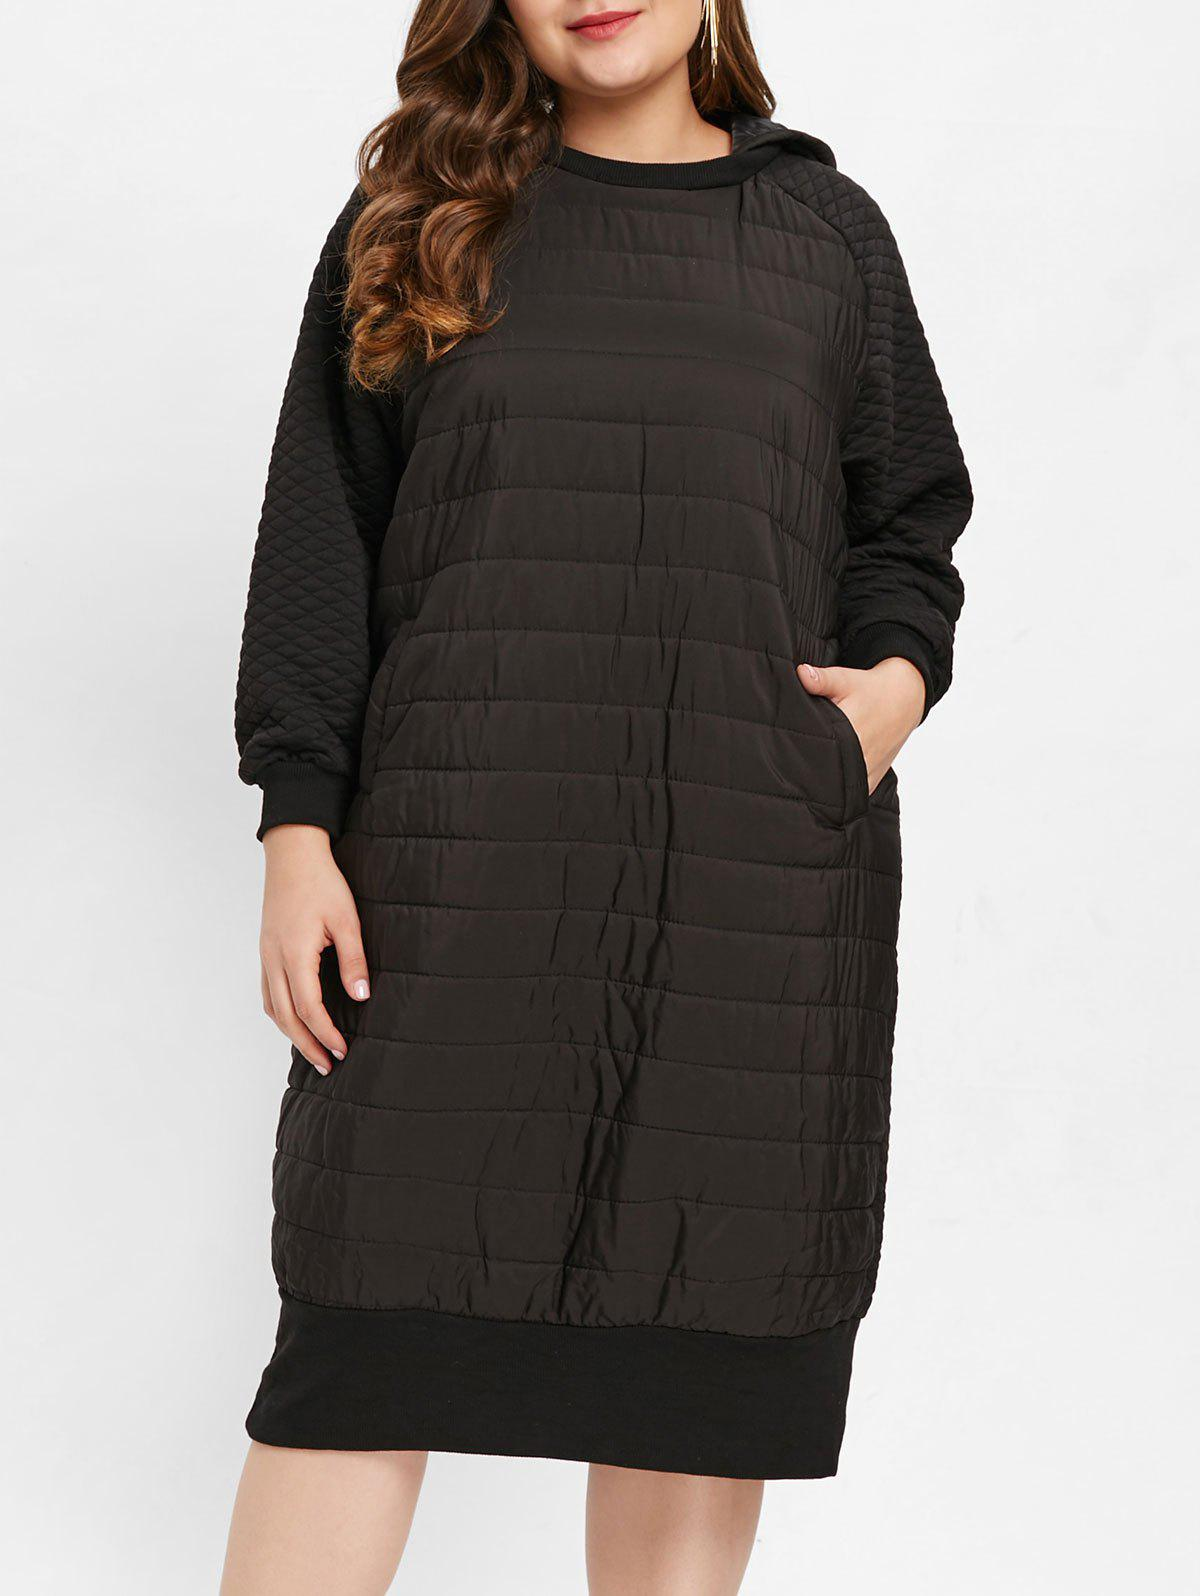 Affordable Hooded Plus Size Quilted Longline Dress